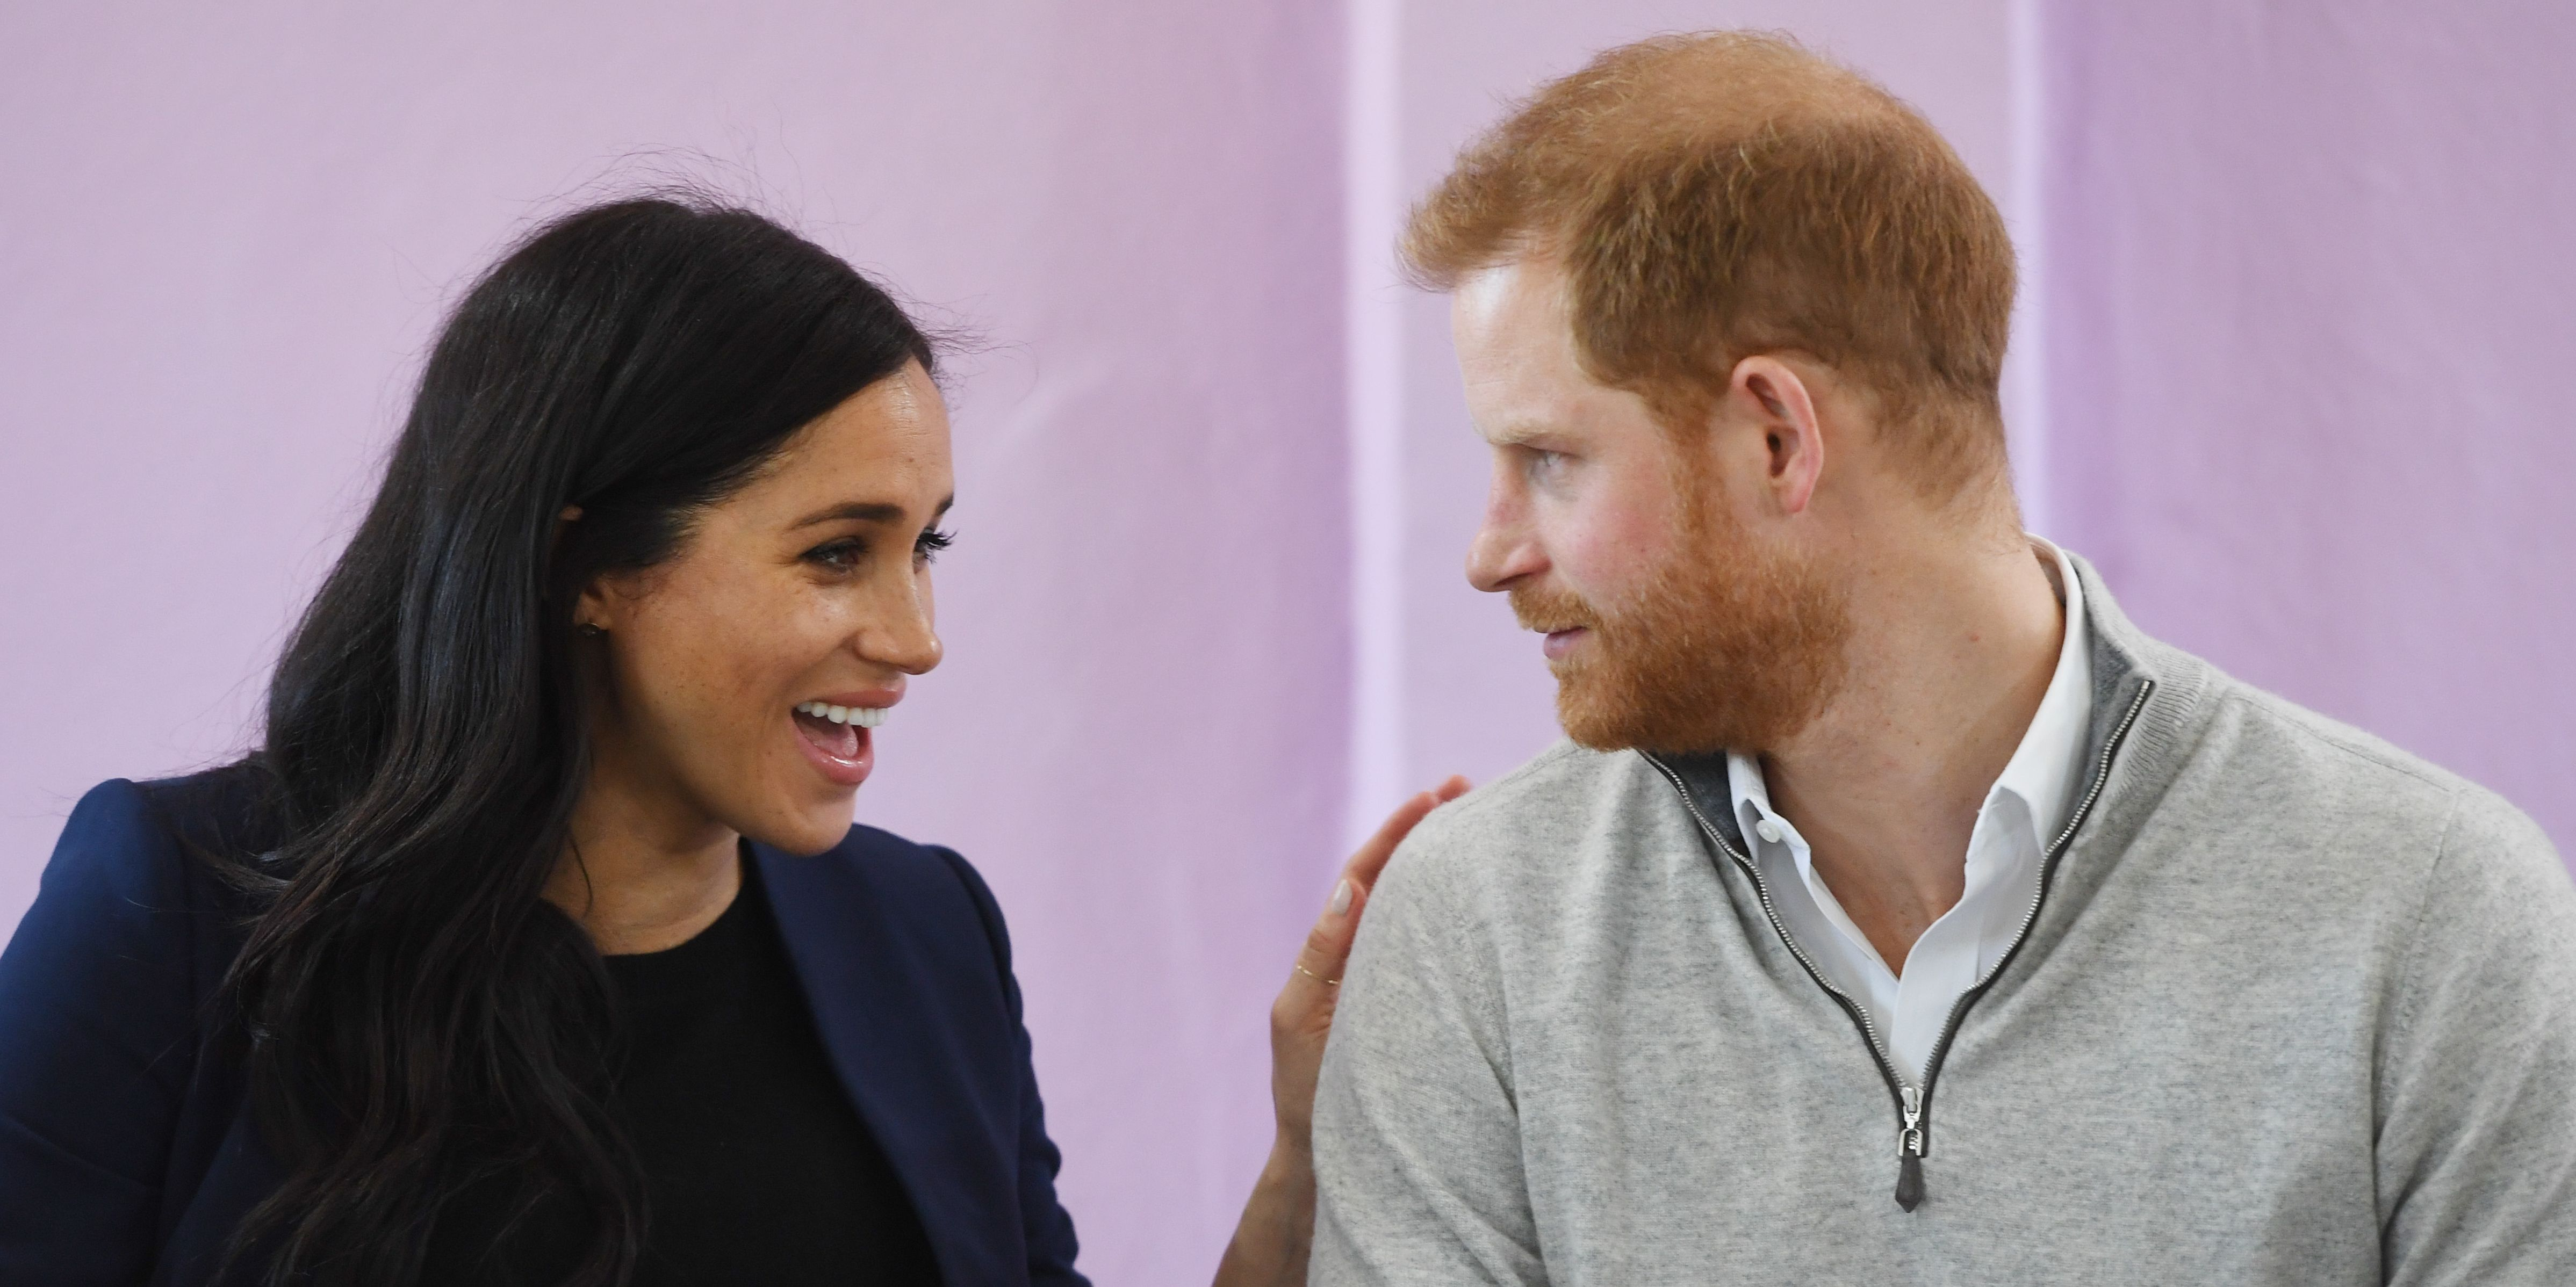 The Chatham Institute aligns with both royals' interests.